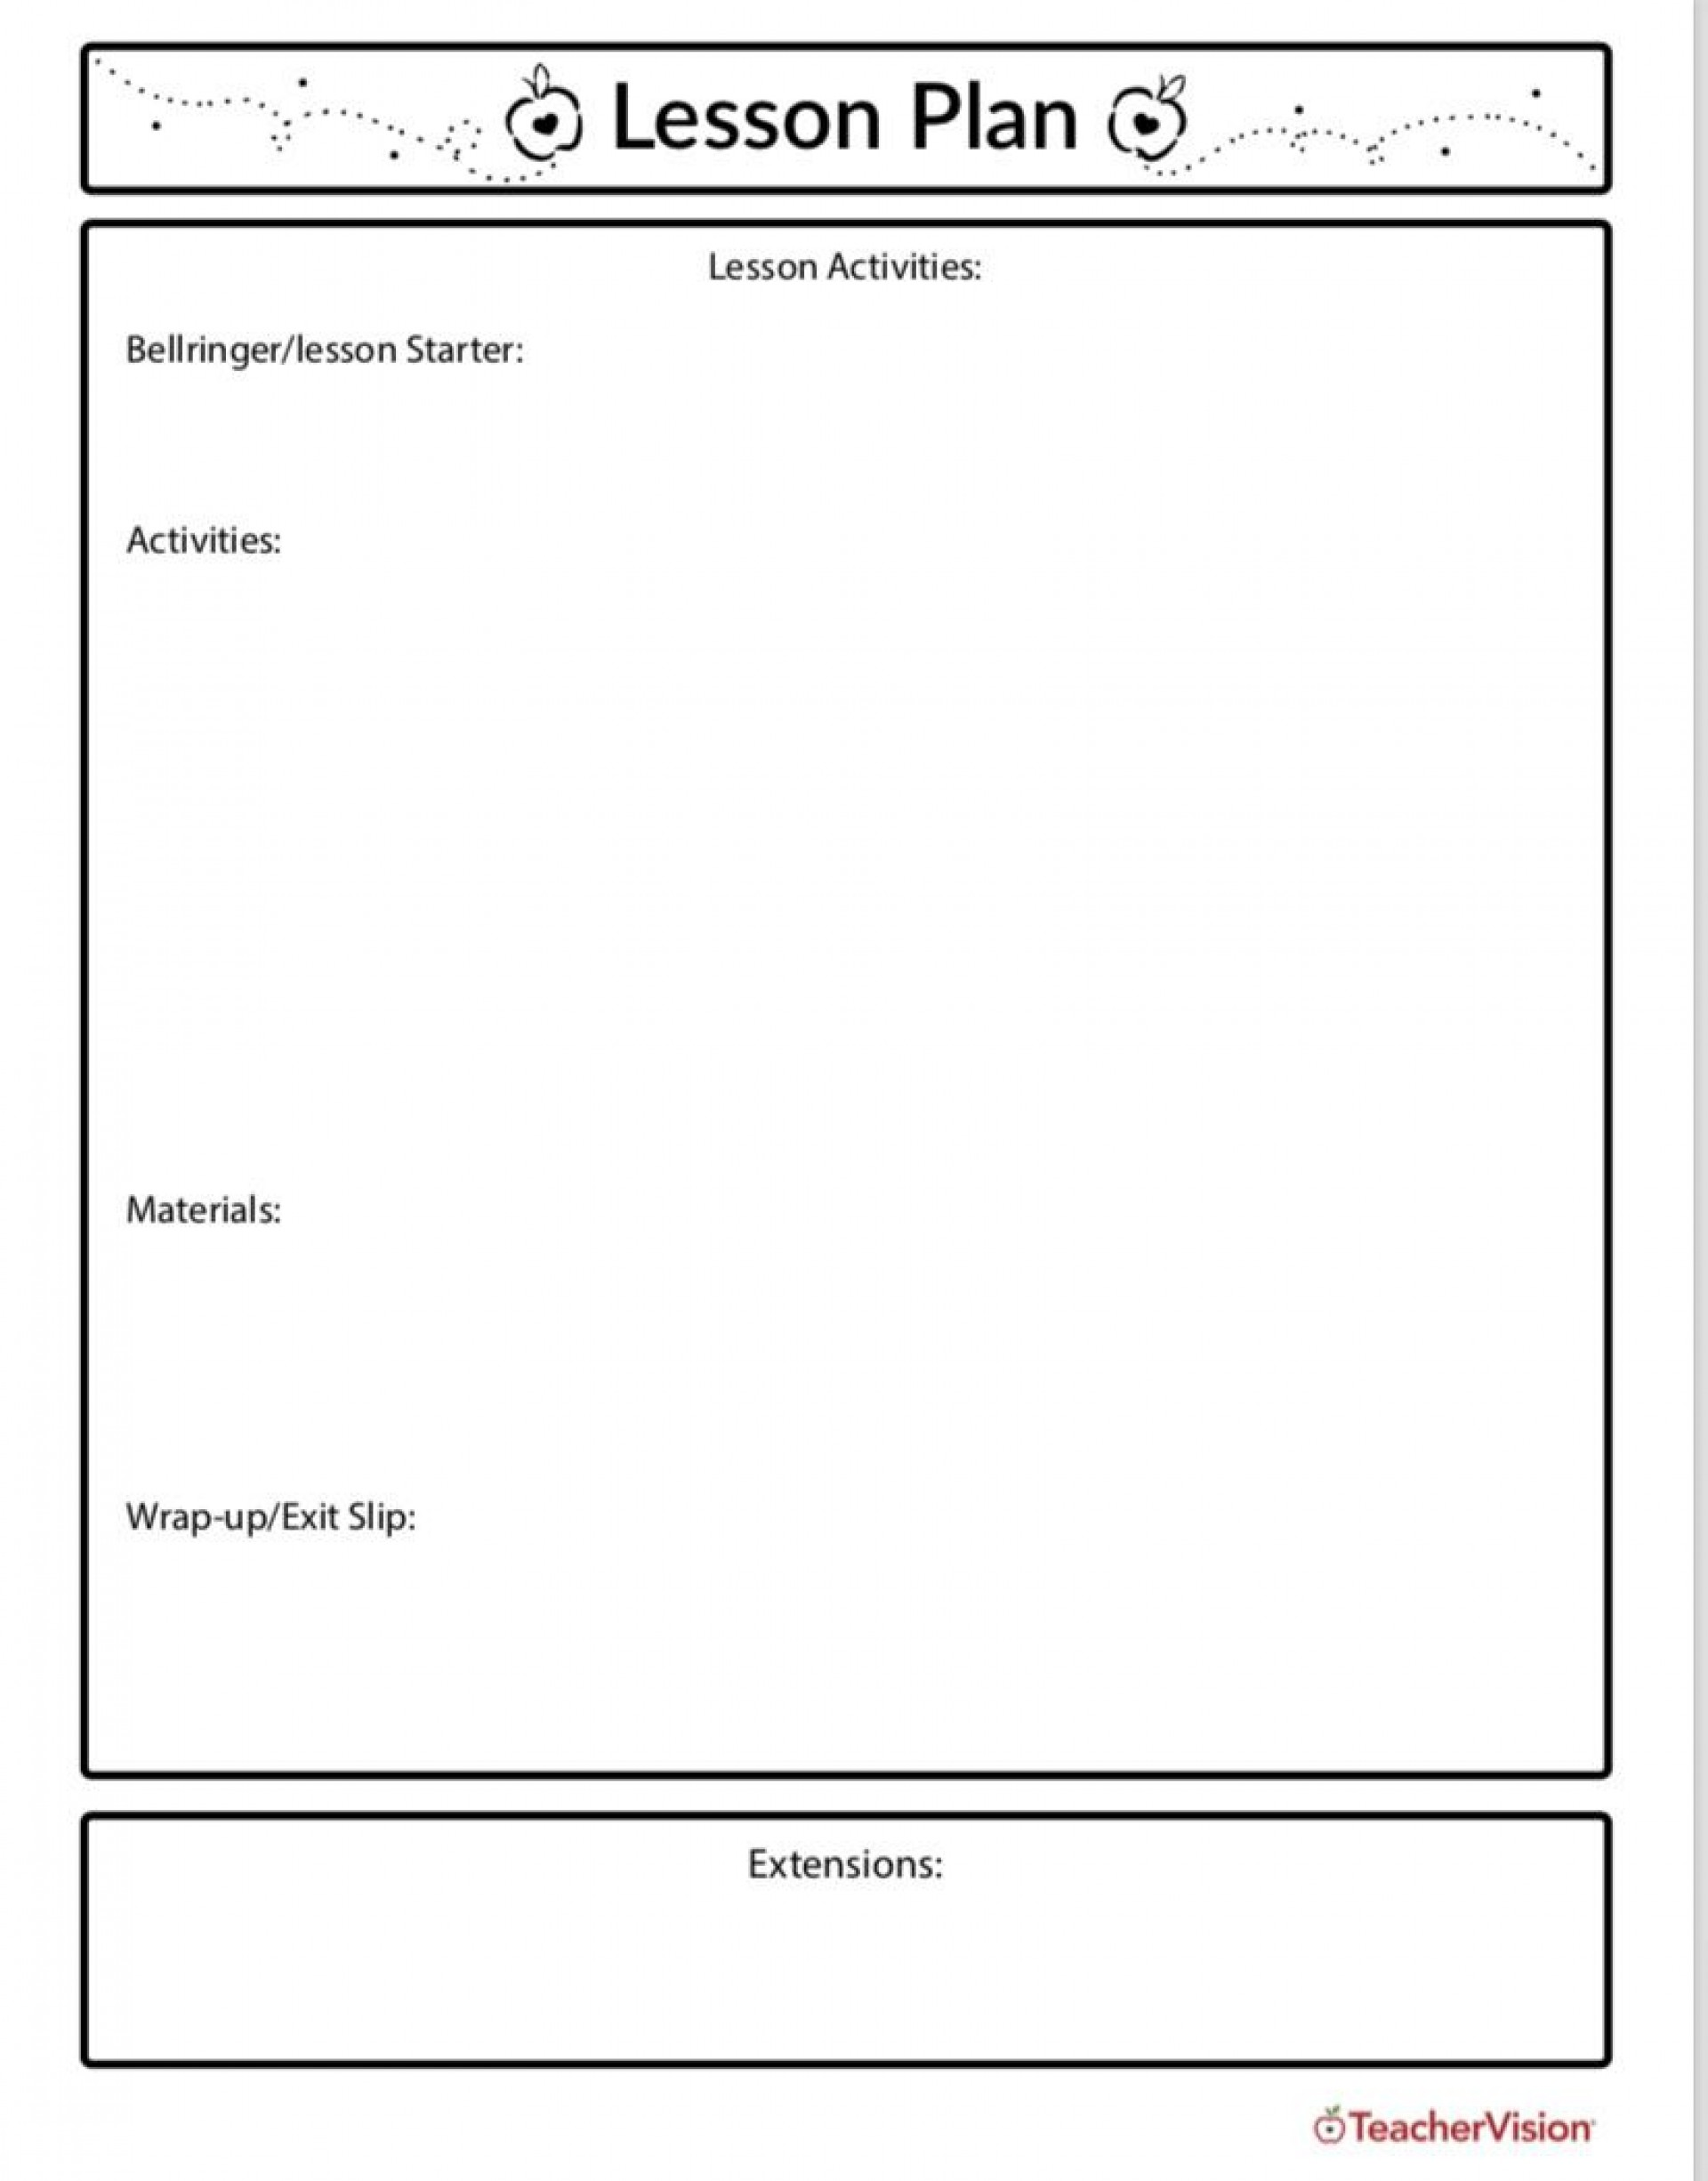 005 Simple Editable Lesson Plan Template Elementary Idea 1920